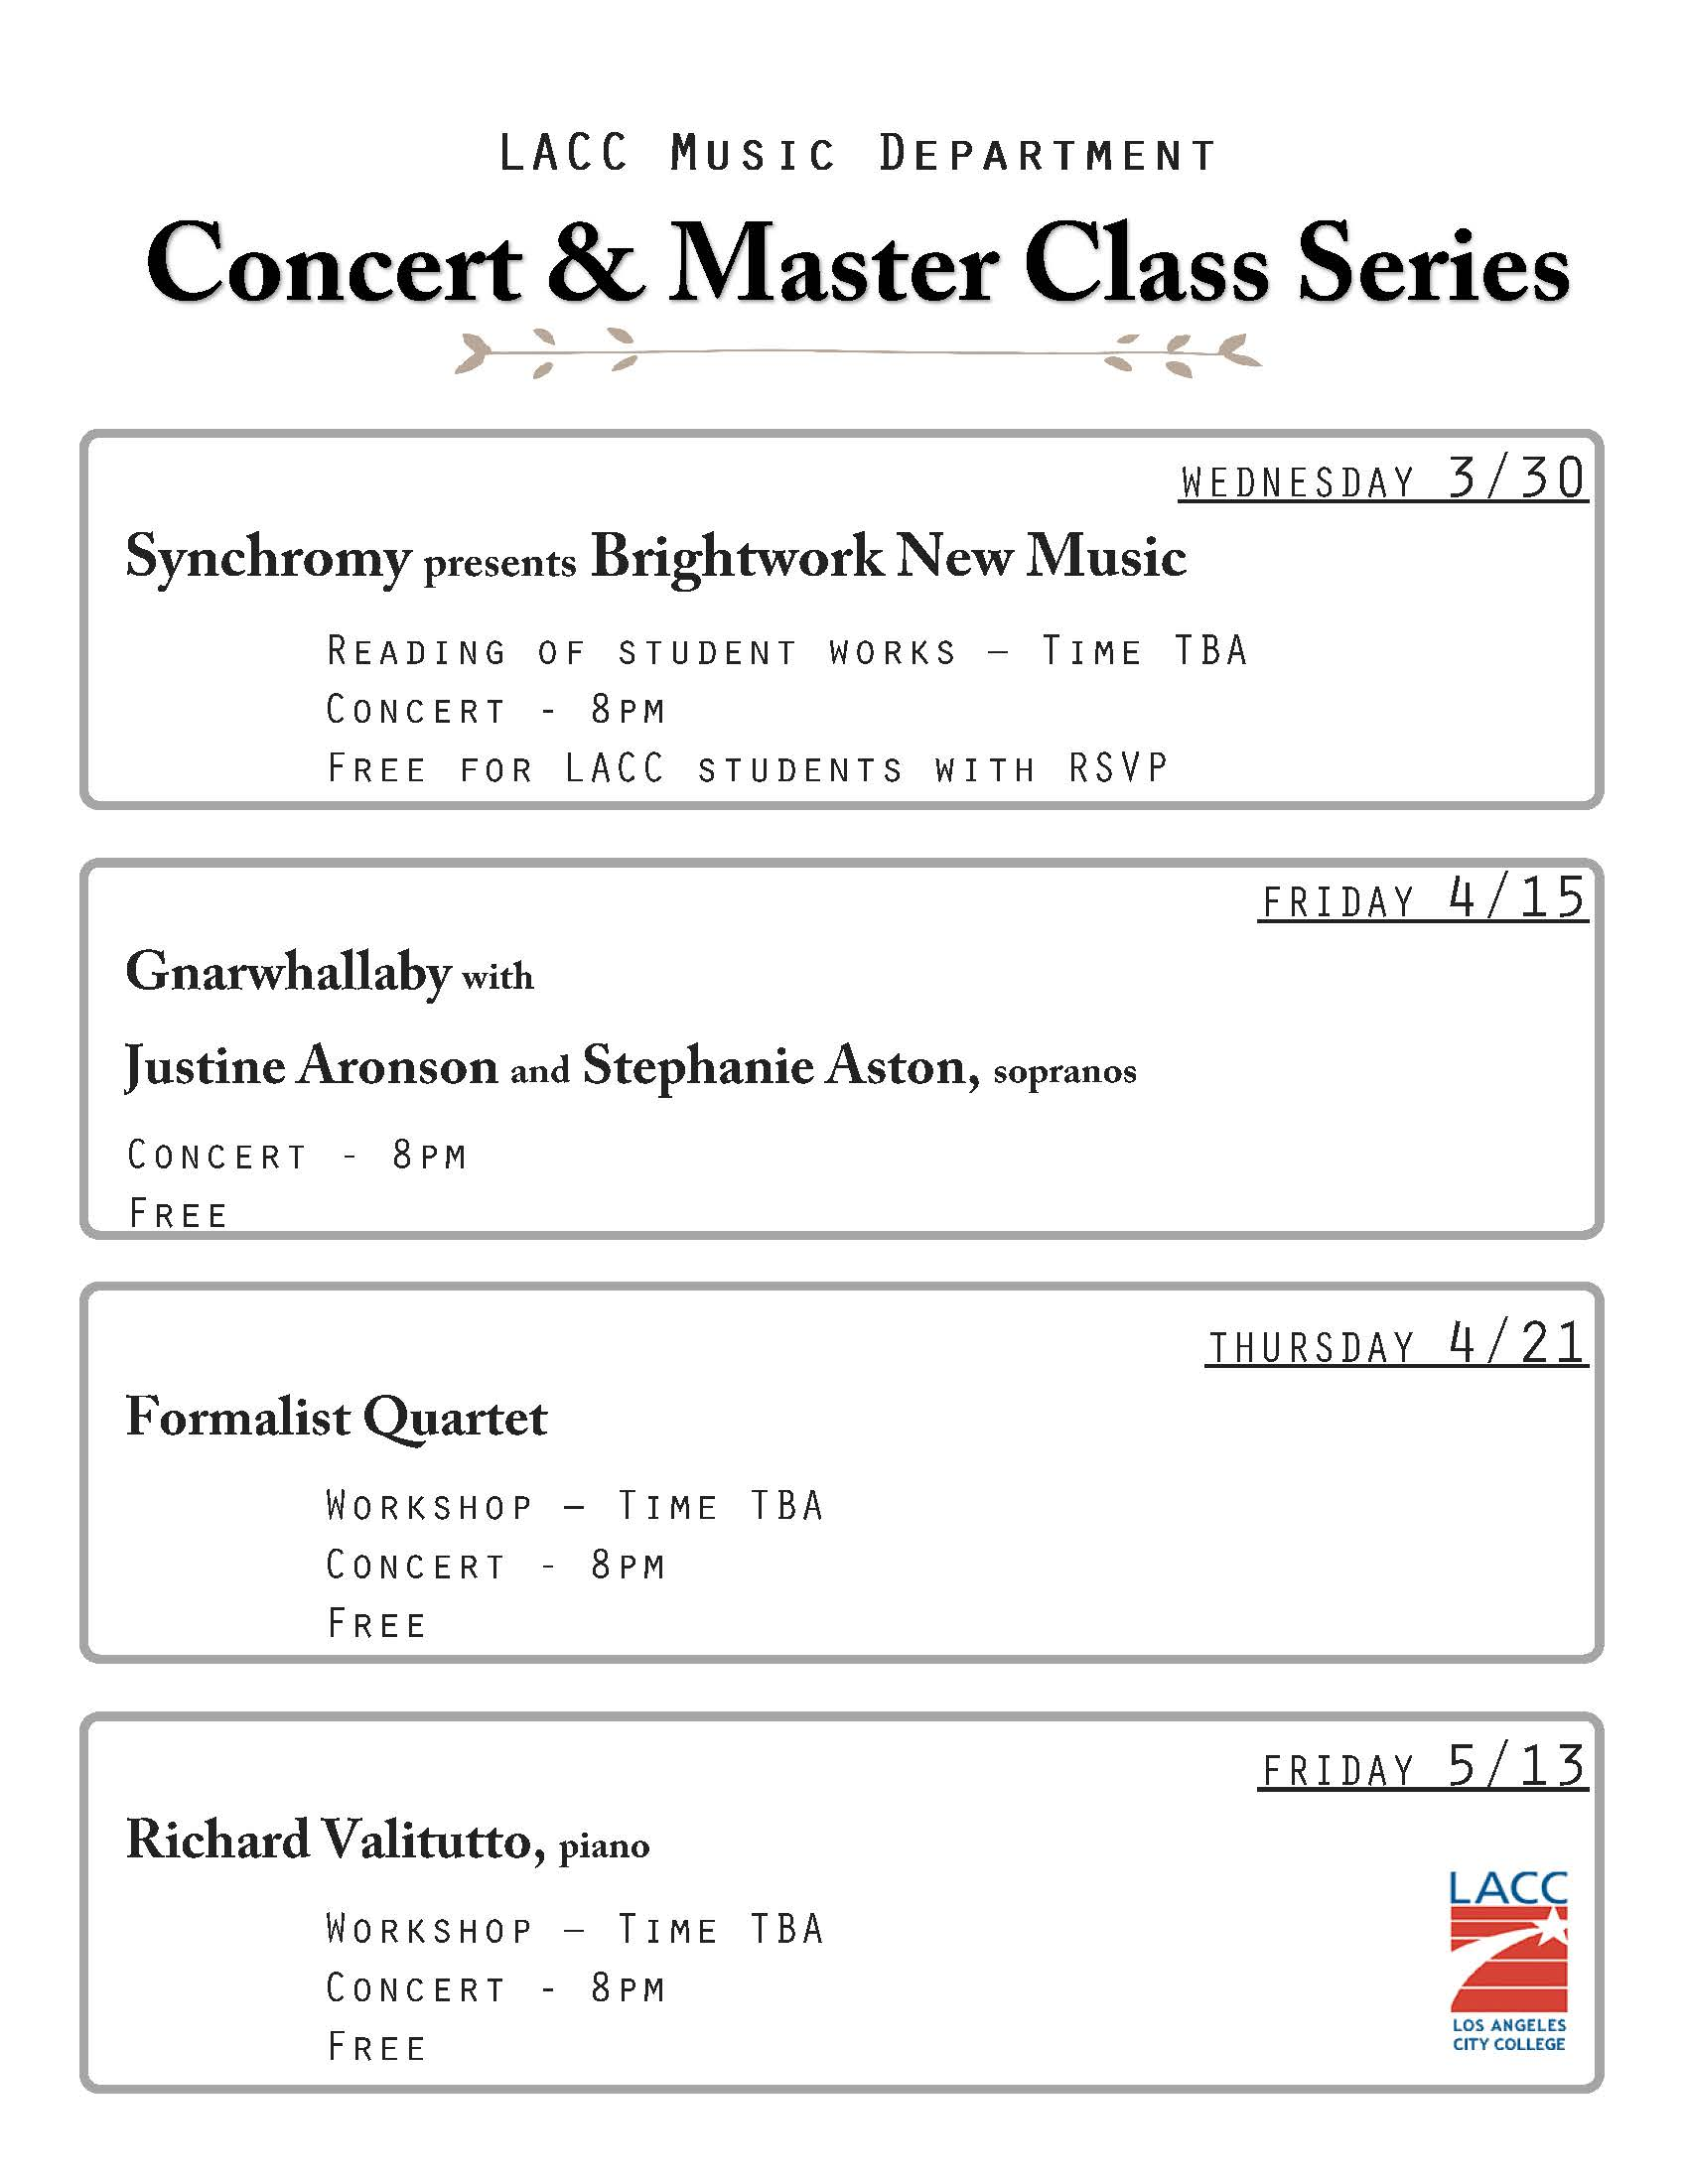 Concert and Master Class Series